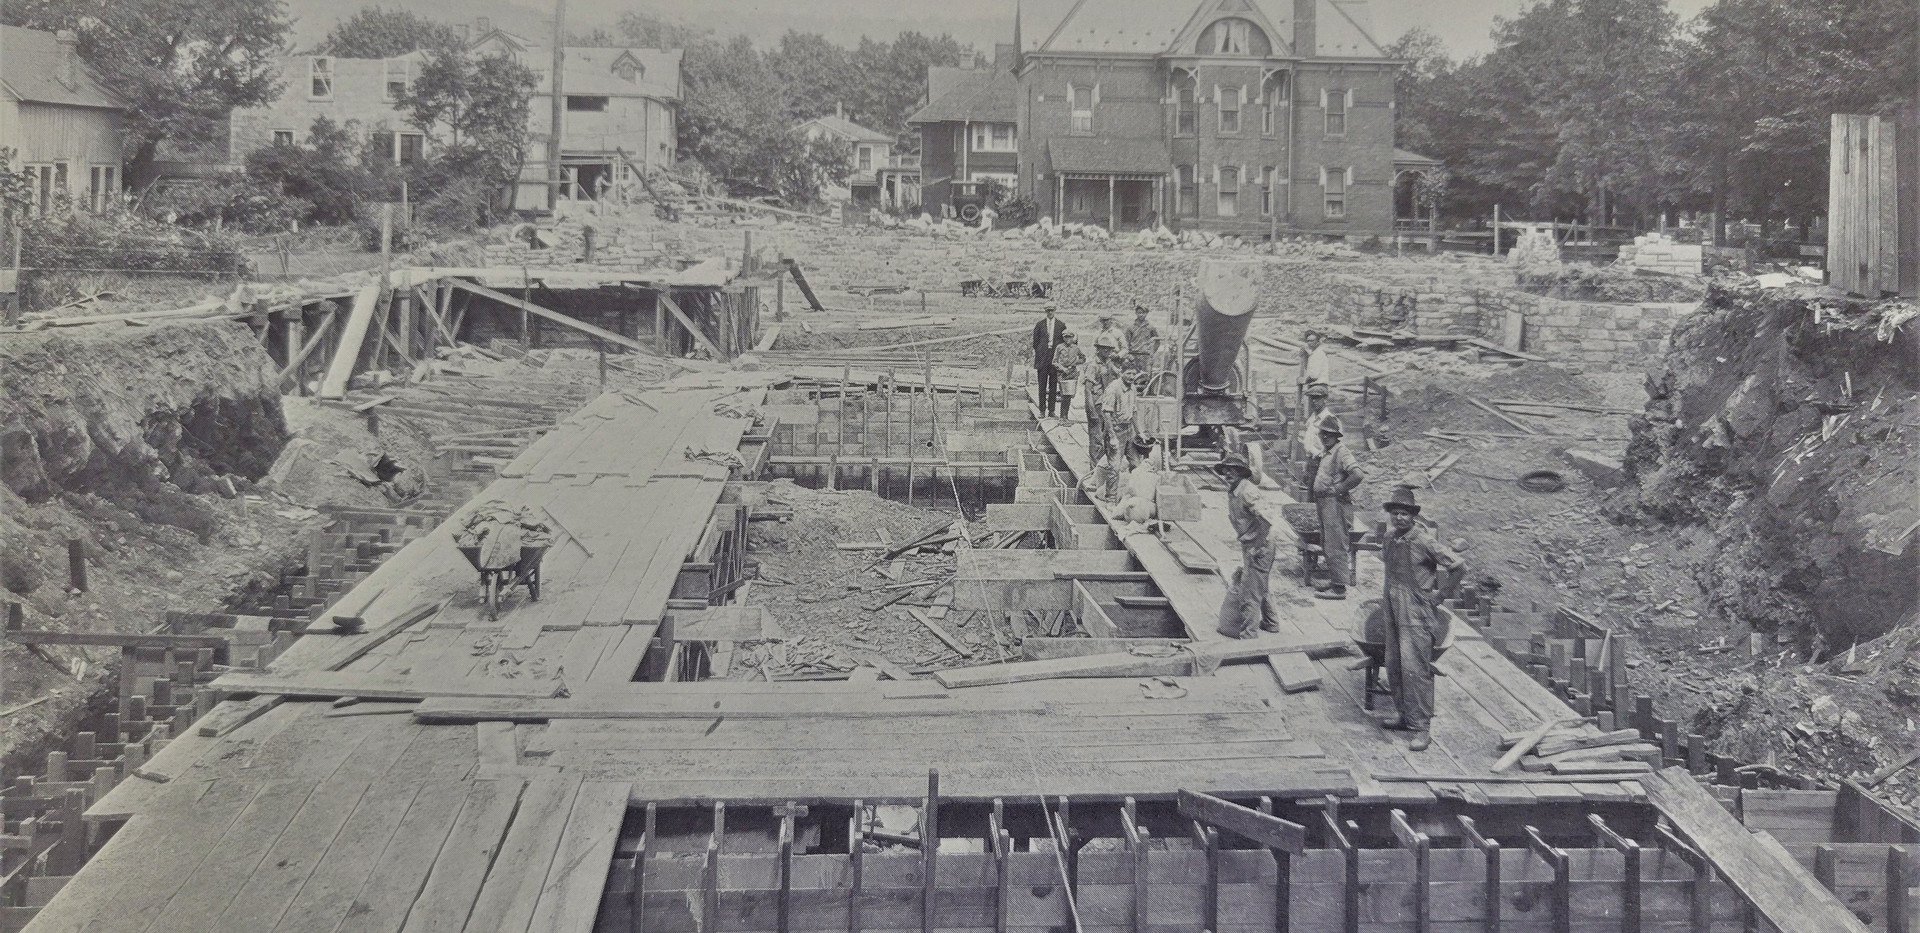 Laying the Foundation 1925